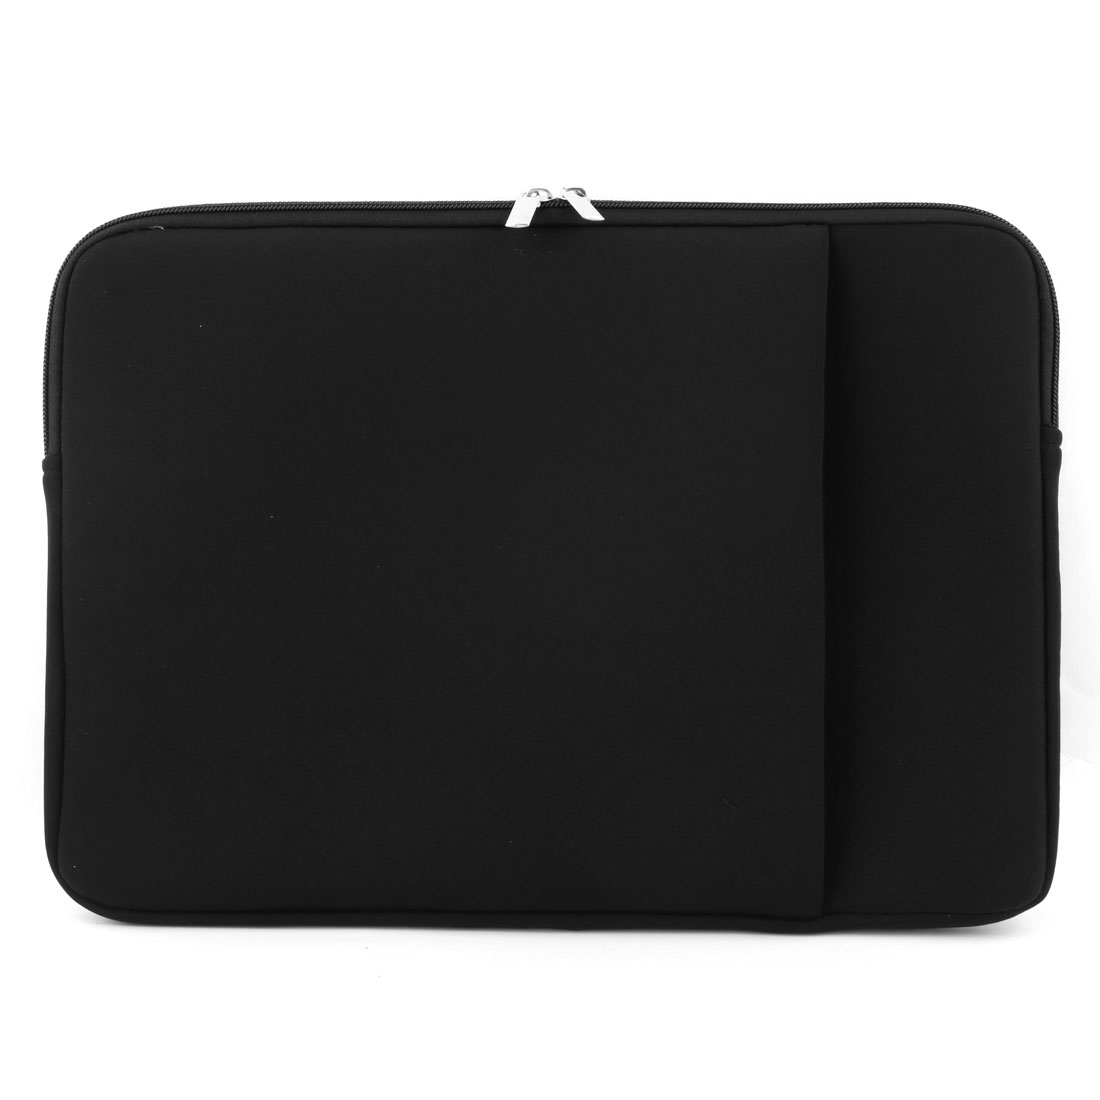 PC Dual Zipper Pouch Laptop Sleeve Bag Black for MacBook Pro Air 11 Inch